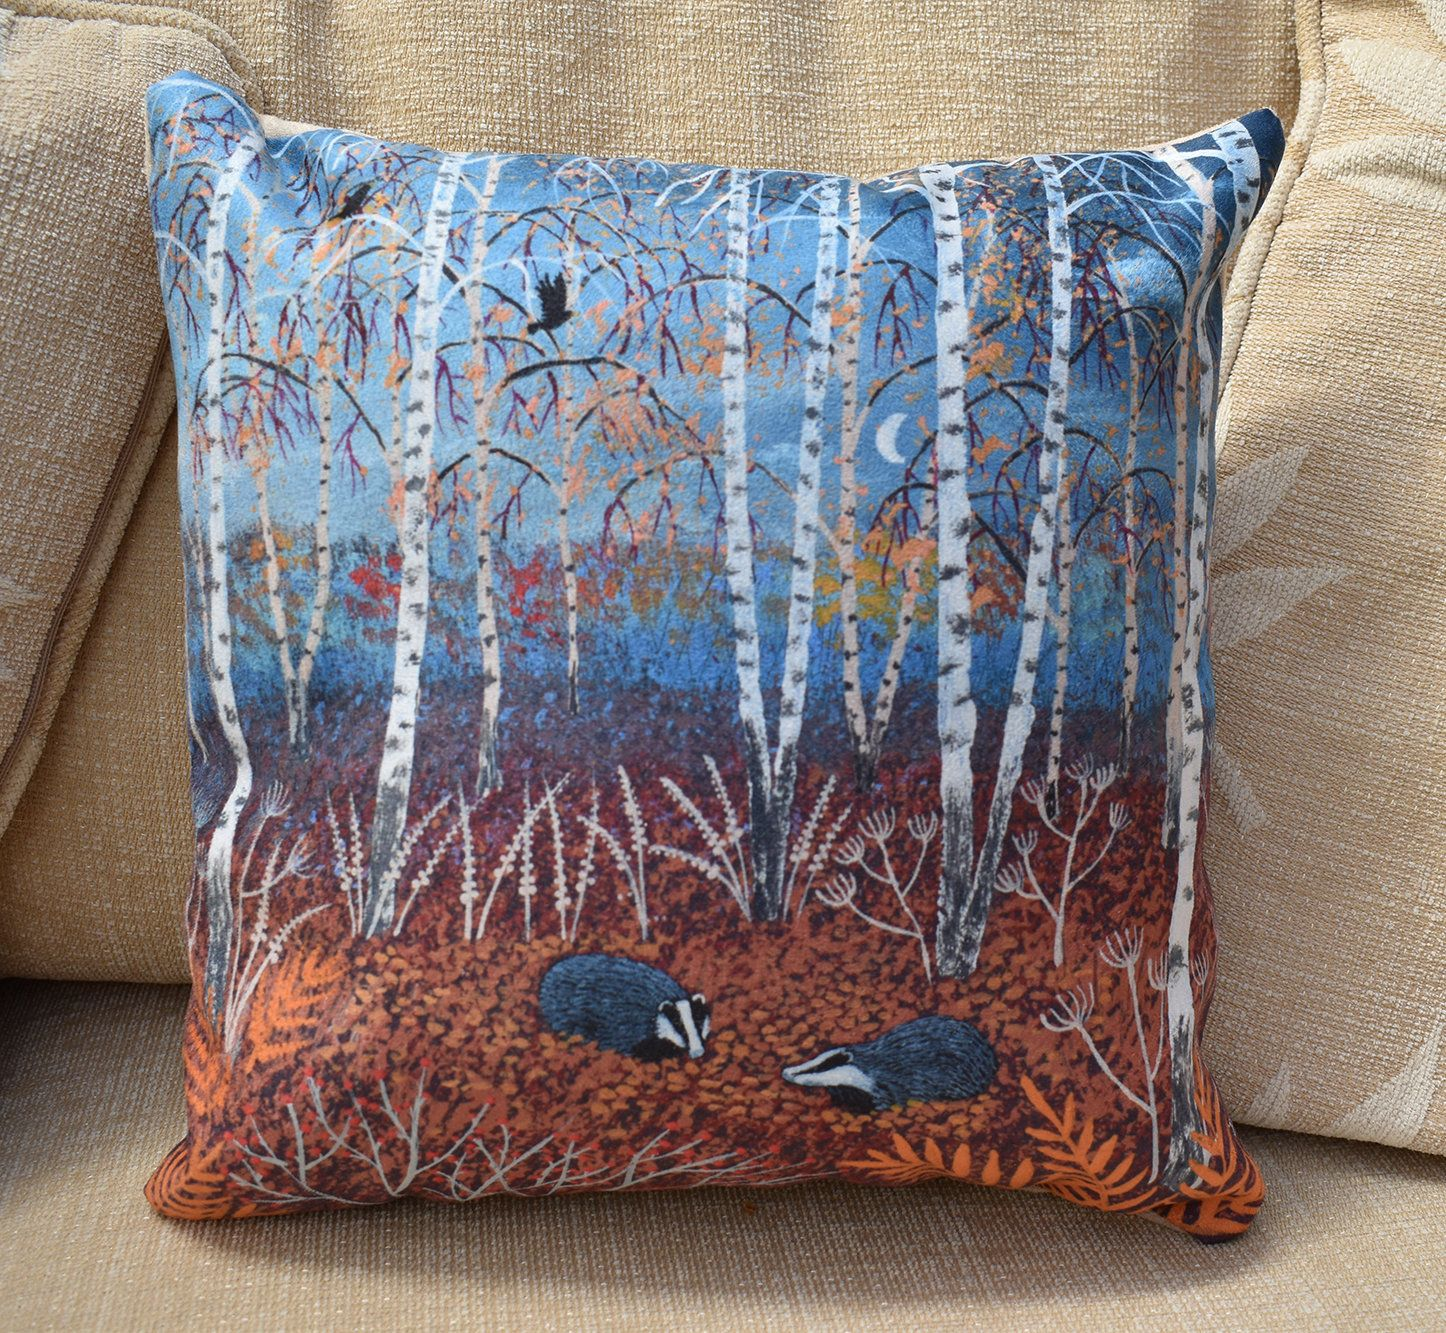 12x12 inch faux suede cushion of autumn scene with badgers digitally printed from an original painting 'The Badgers of Autumn Wood' #autumnscenes